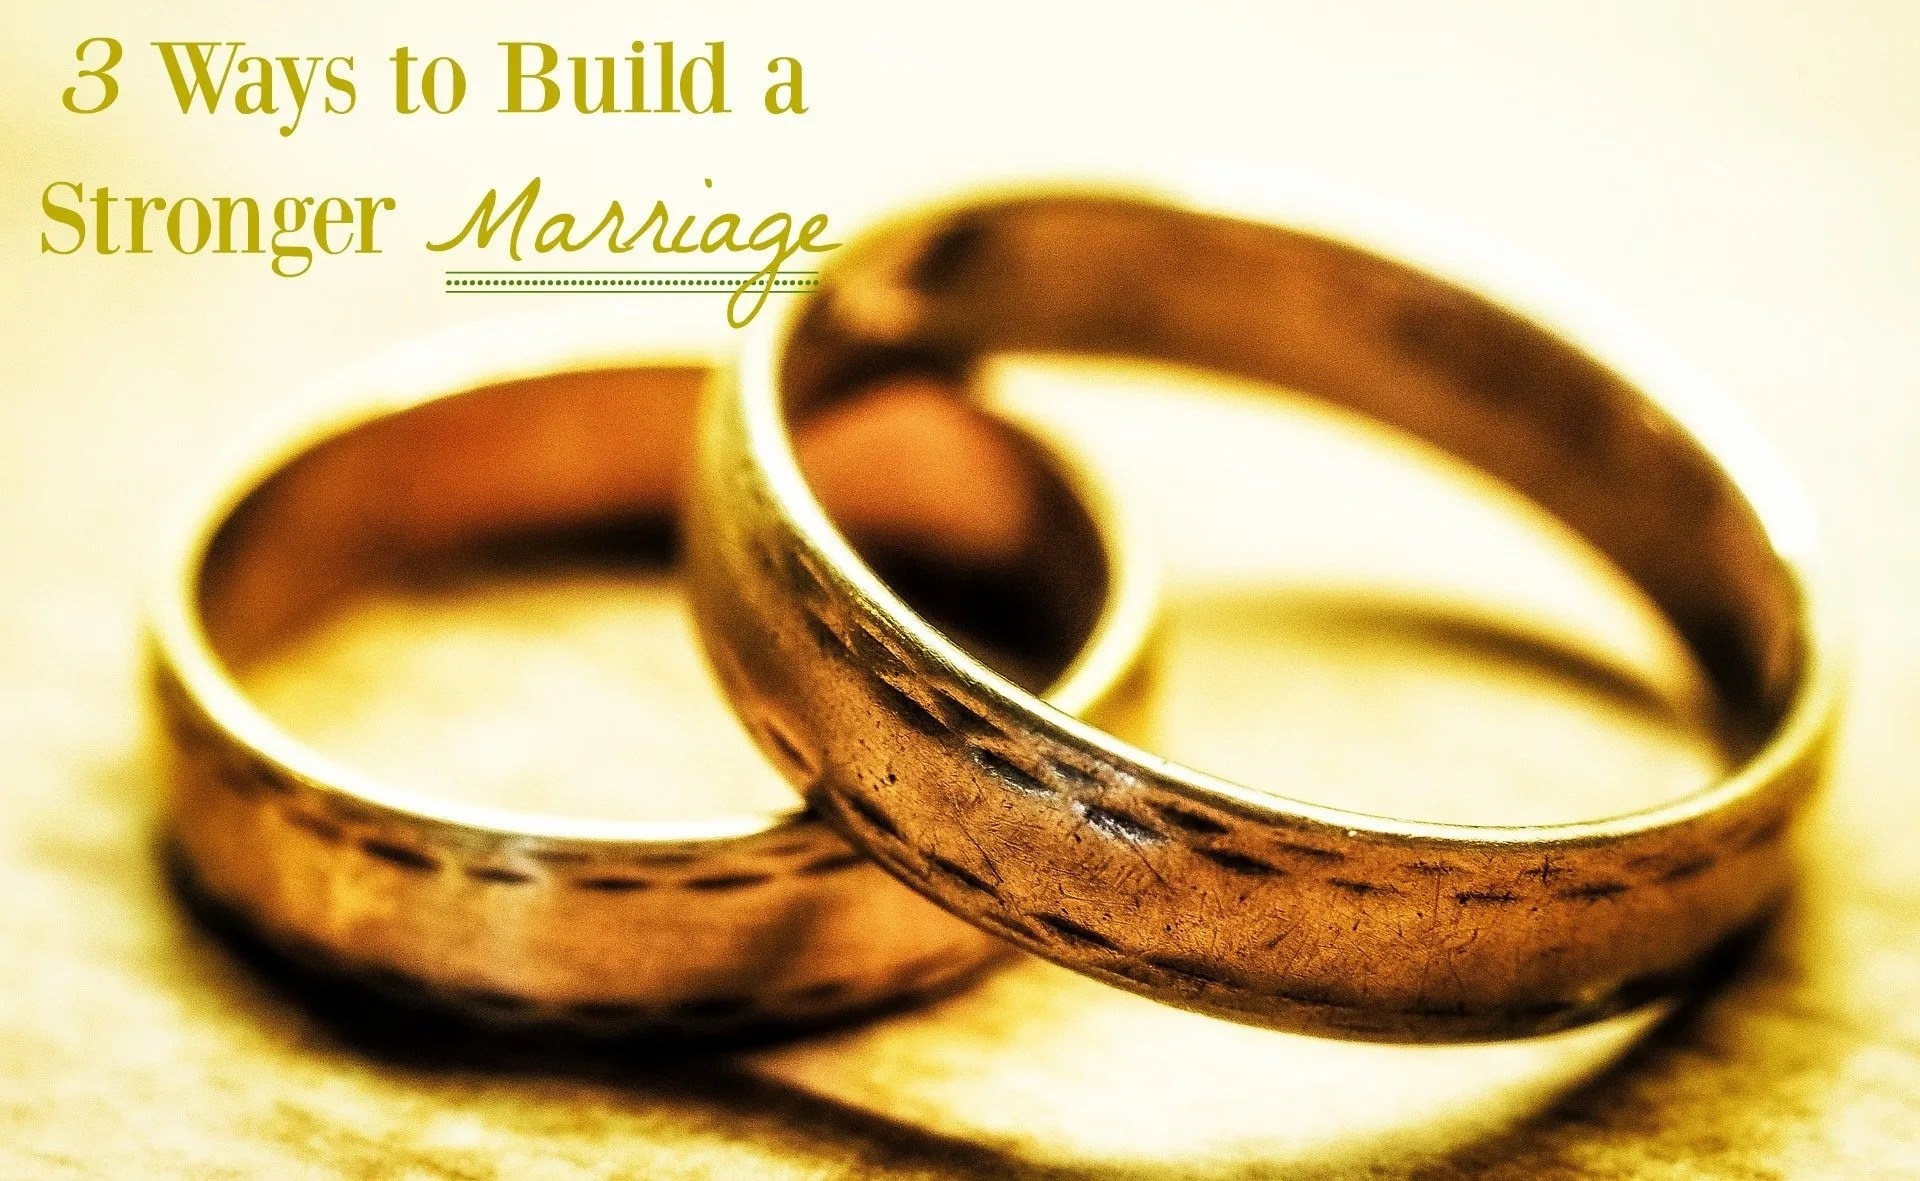 3 Ways to Build a Stronger Marriage